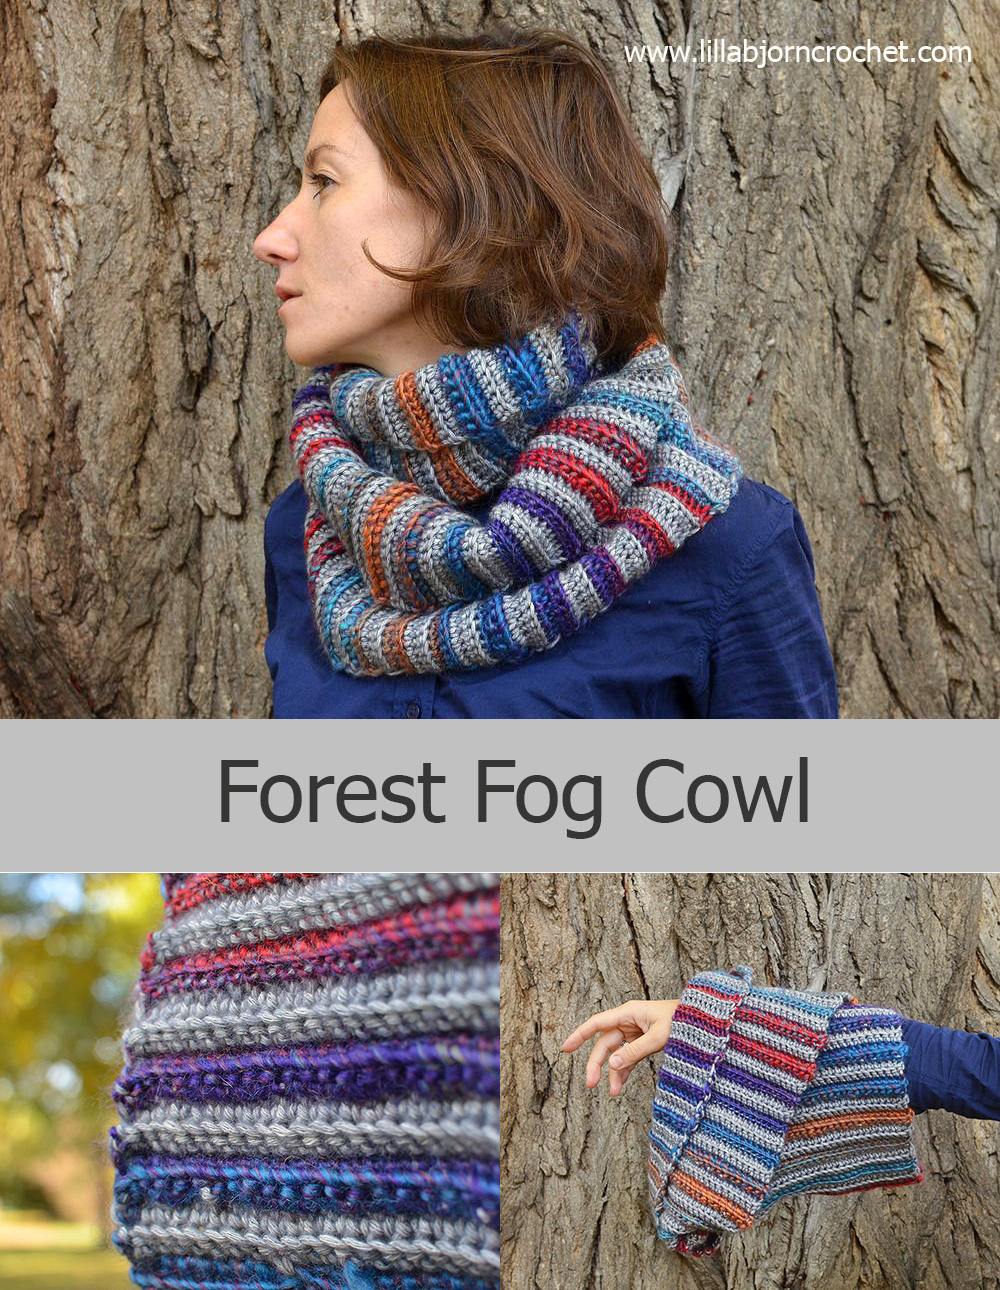 Forest fog cowl free pattern lillabjrns crochet world forest gog cowl free crochet pattern by lilla bjorn crochet with photo tutorial bankloansurffo Gallery